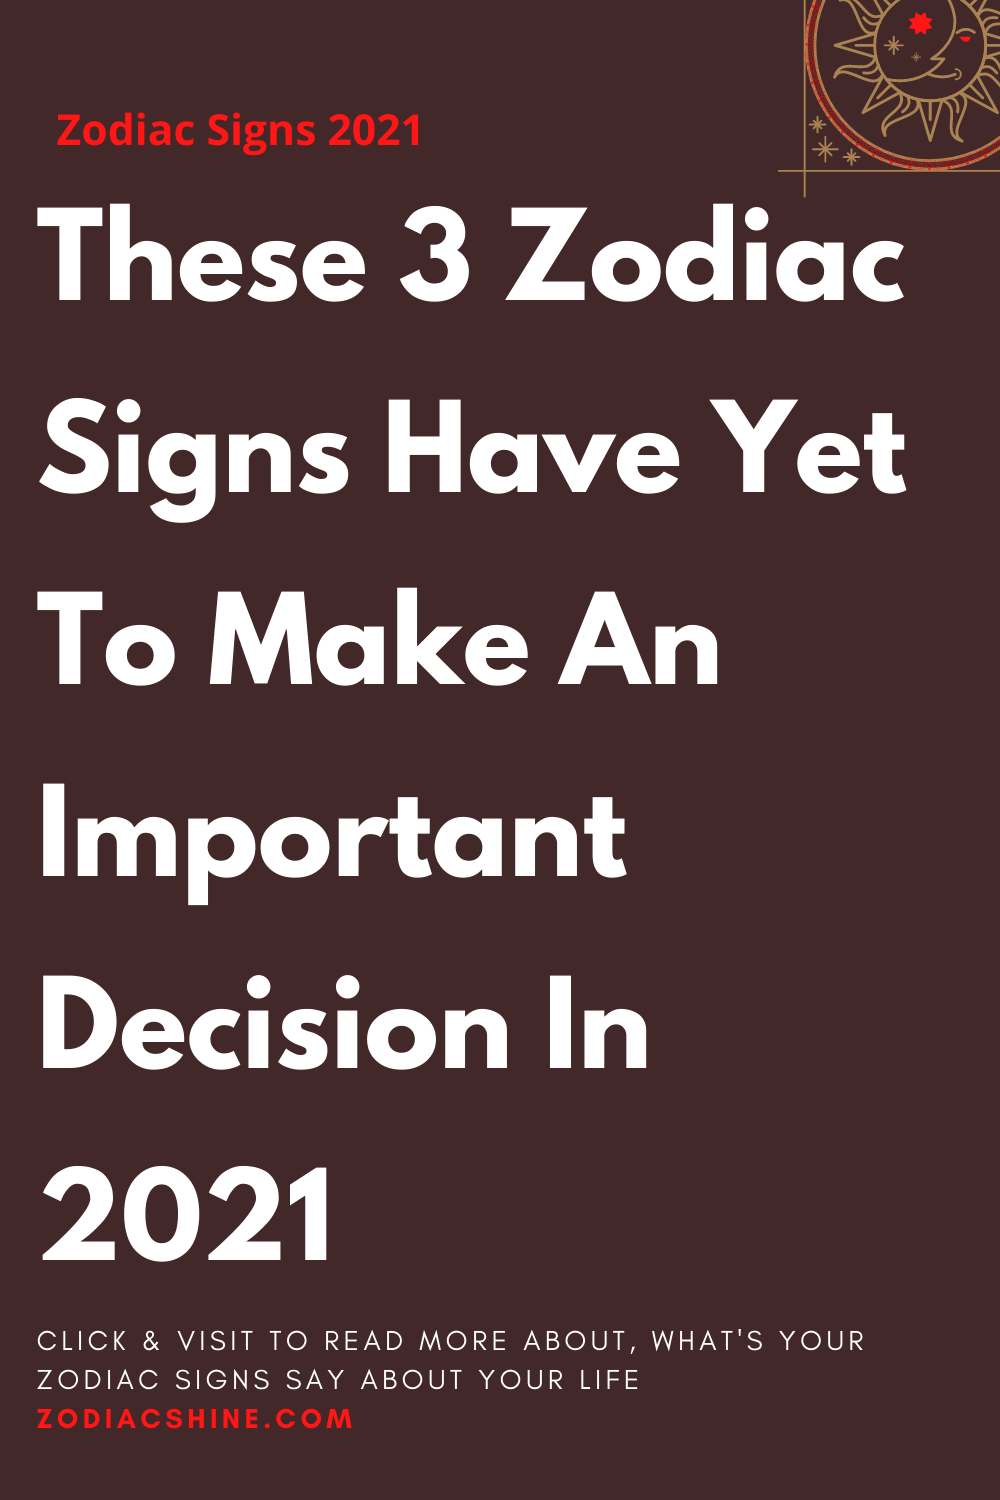 These 3 Zodiac Signs Have Yet To Make An Important Decision In 2021